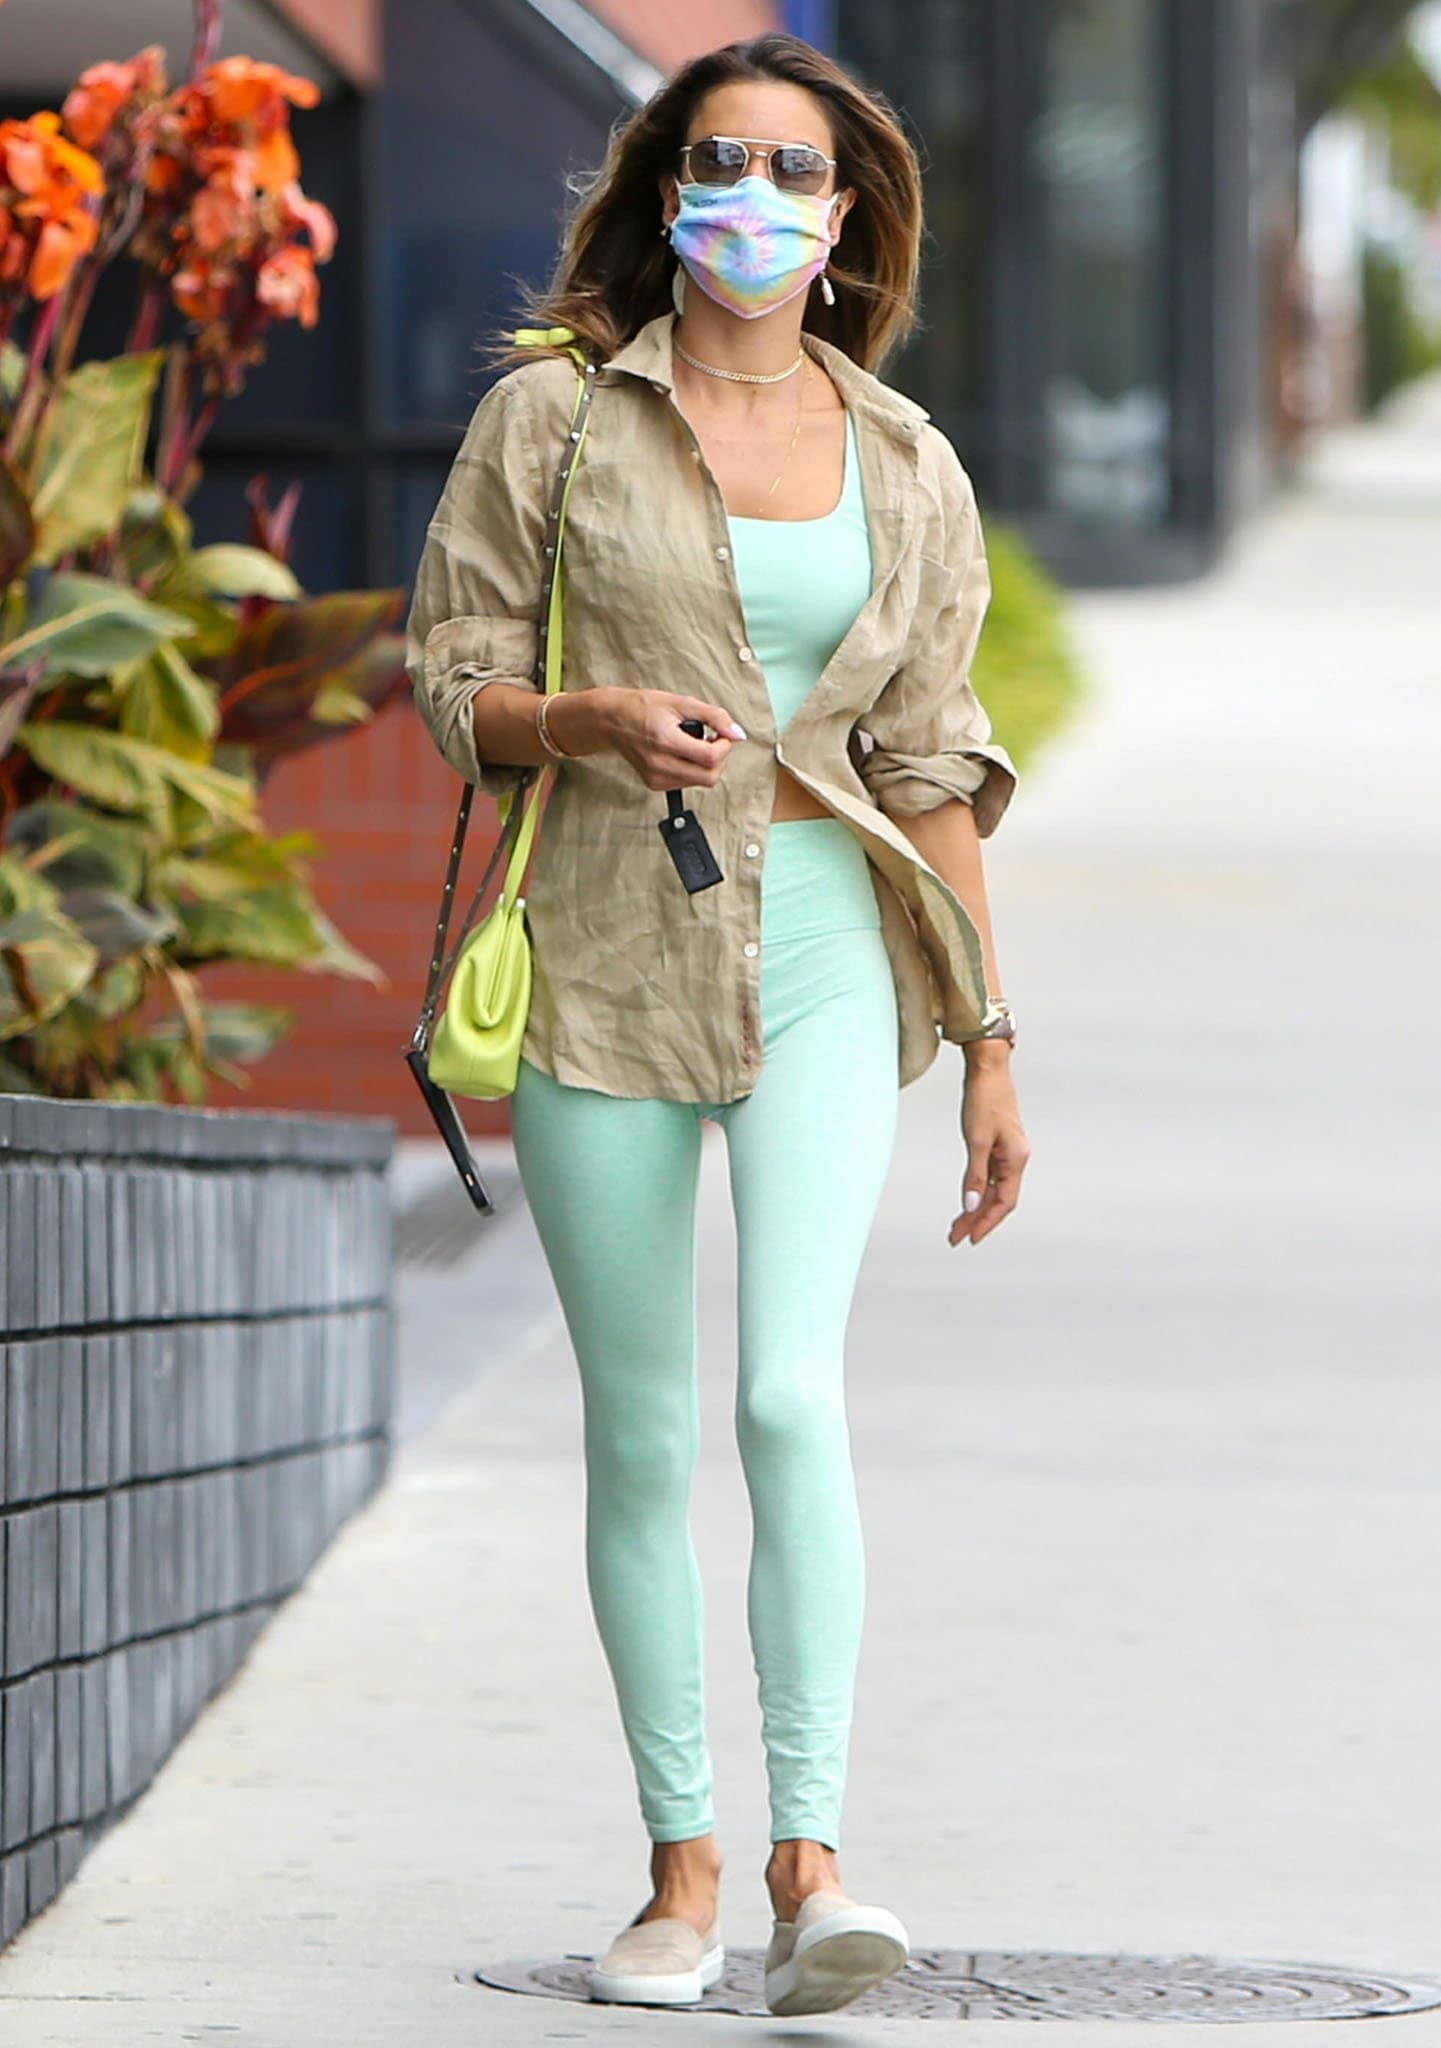 Alessandra Ambrosio steps out for Pilates class in Alo Yoga honeydew heather bra top and leggings on April 1, 2021